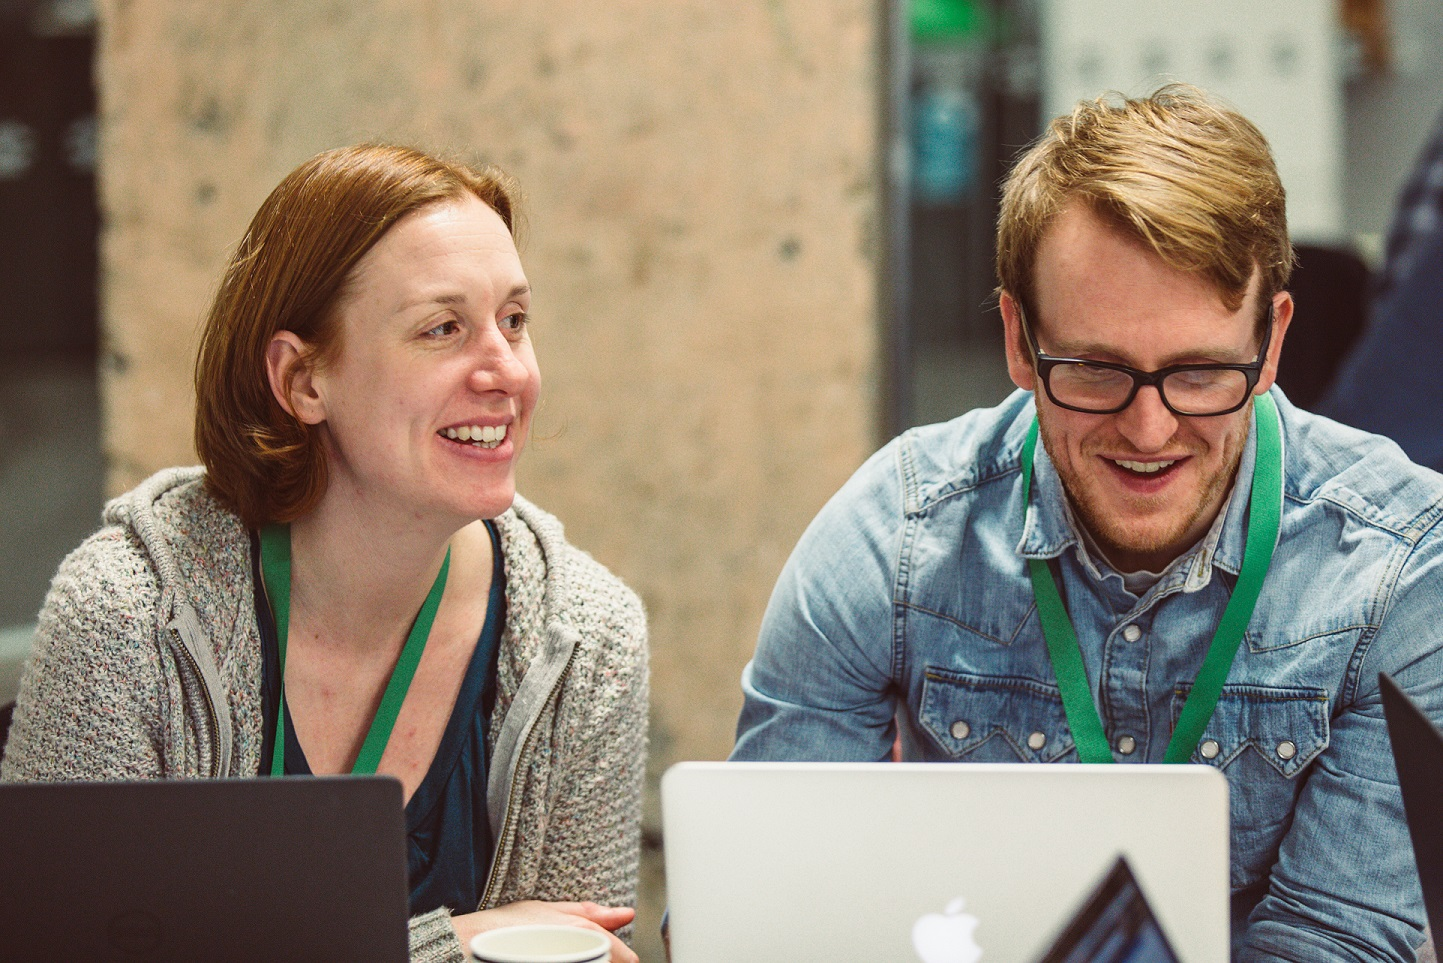 Life as a digital services architect at LGSS Digital